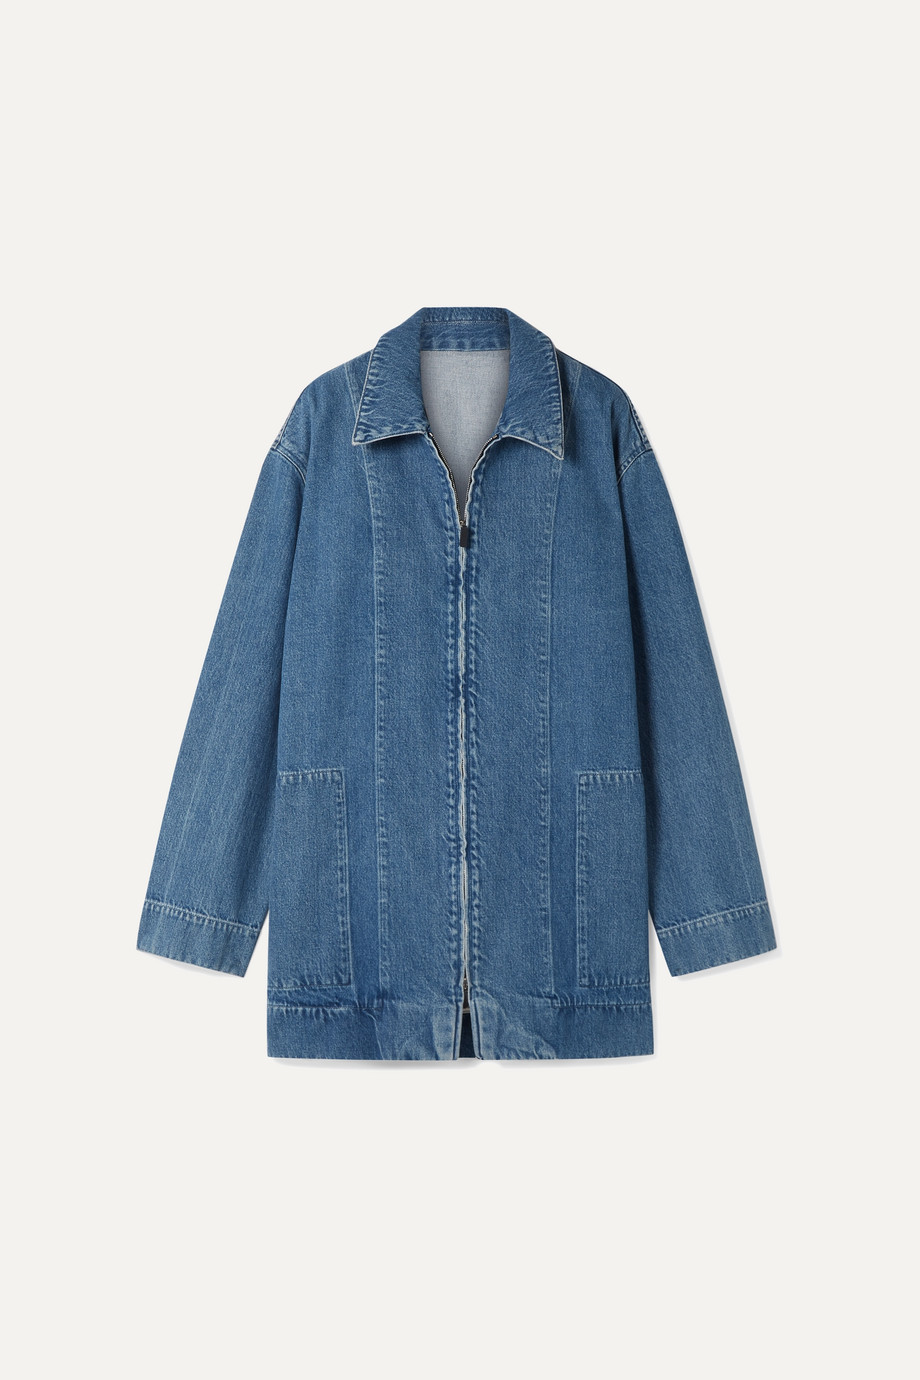 Exact Product: Hermia Oversized Denim Jacket, Brand: The Row, Available on: net-a-porter.com, Price: $920